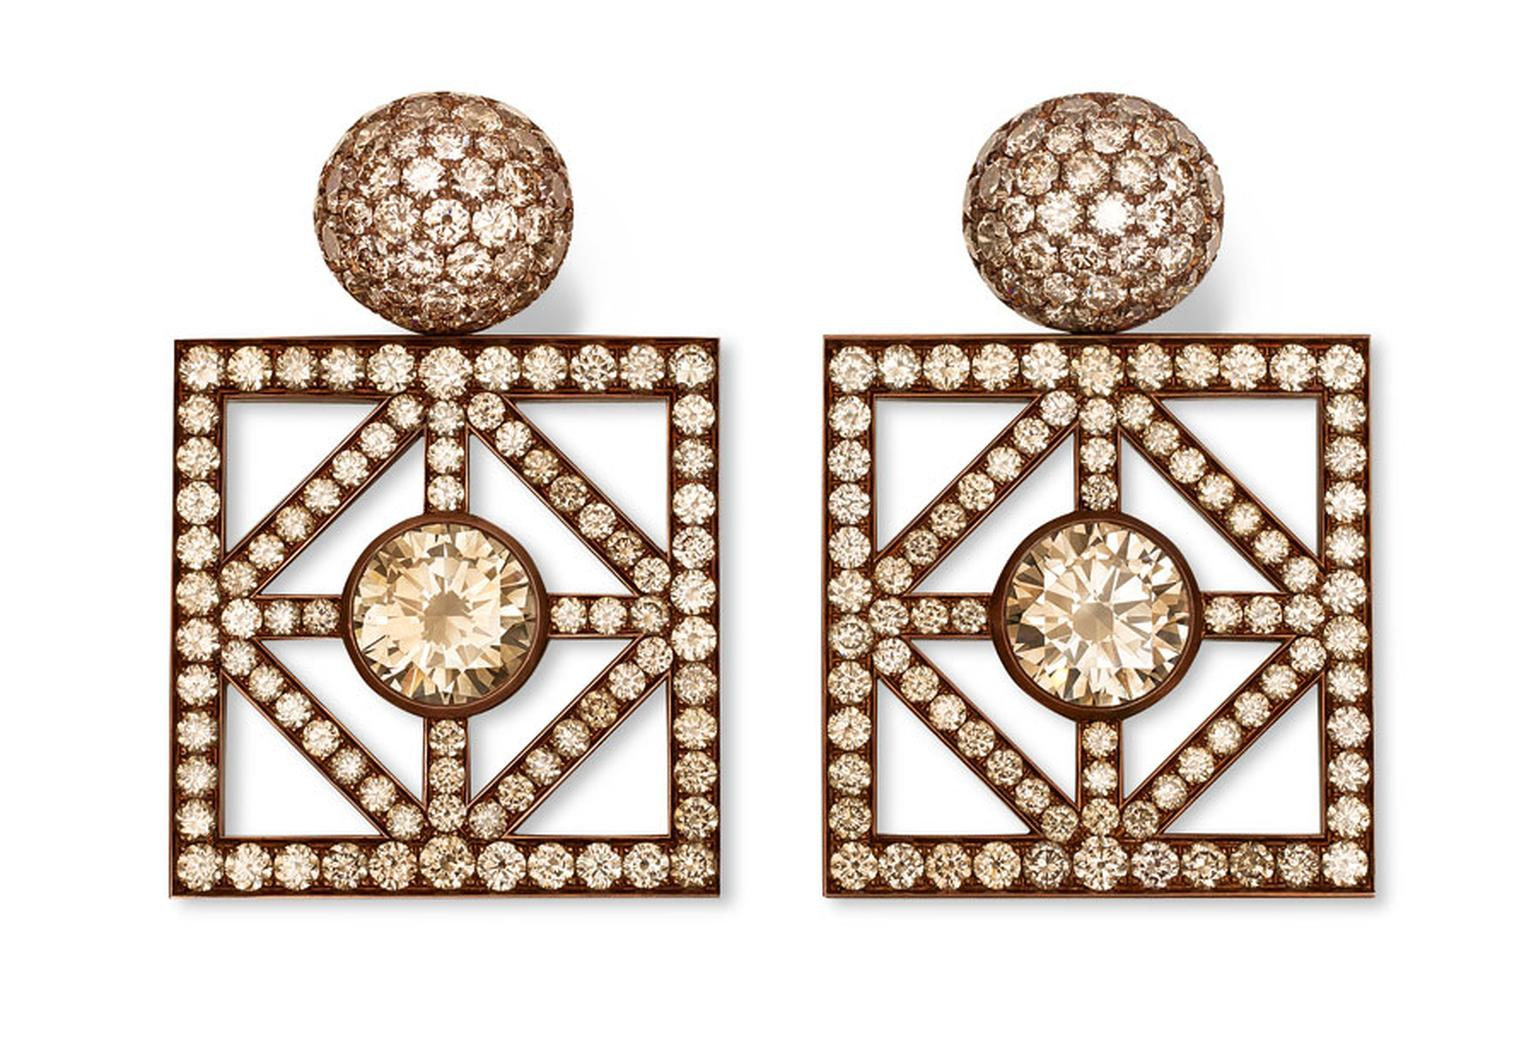 Hemmerle-Earrings-Copper-white-gold-2-diamonds-light-brown-and-diamonds-light-brown-0621